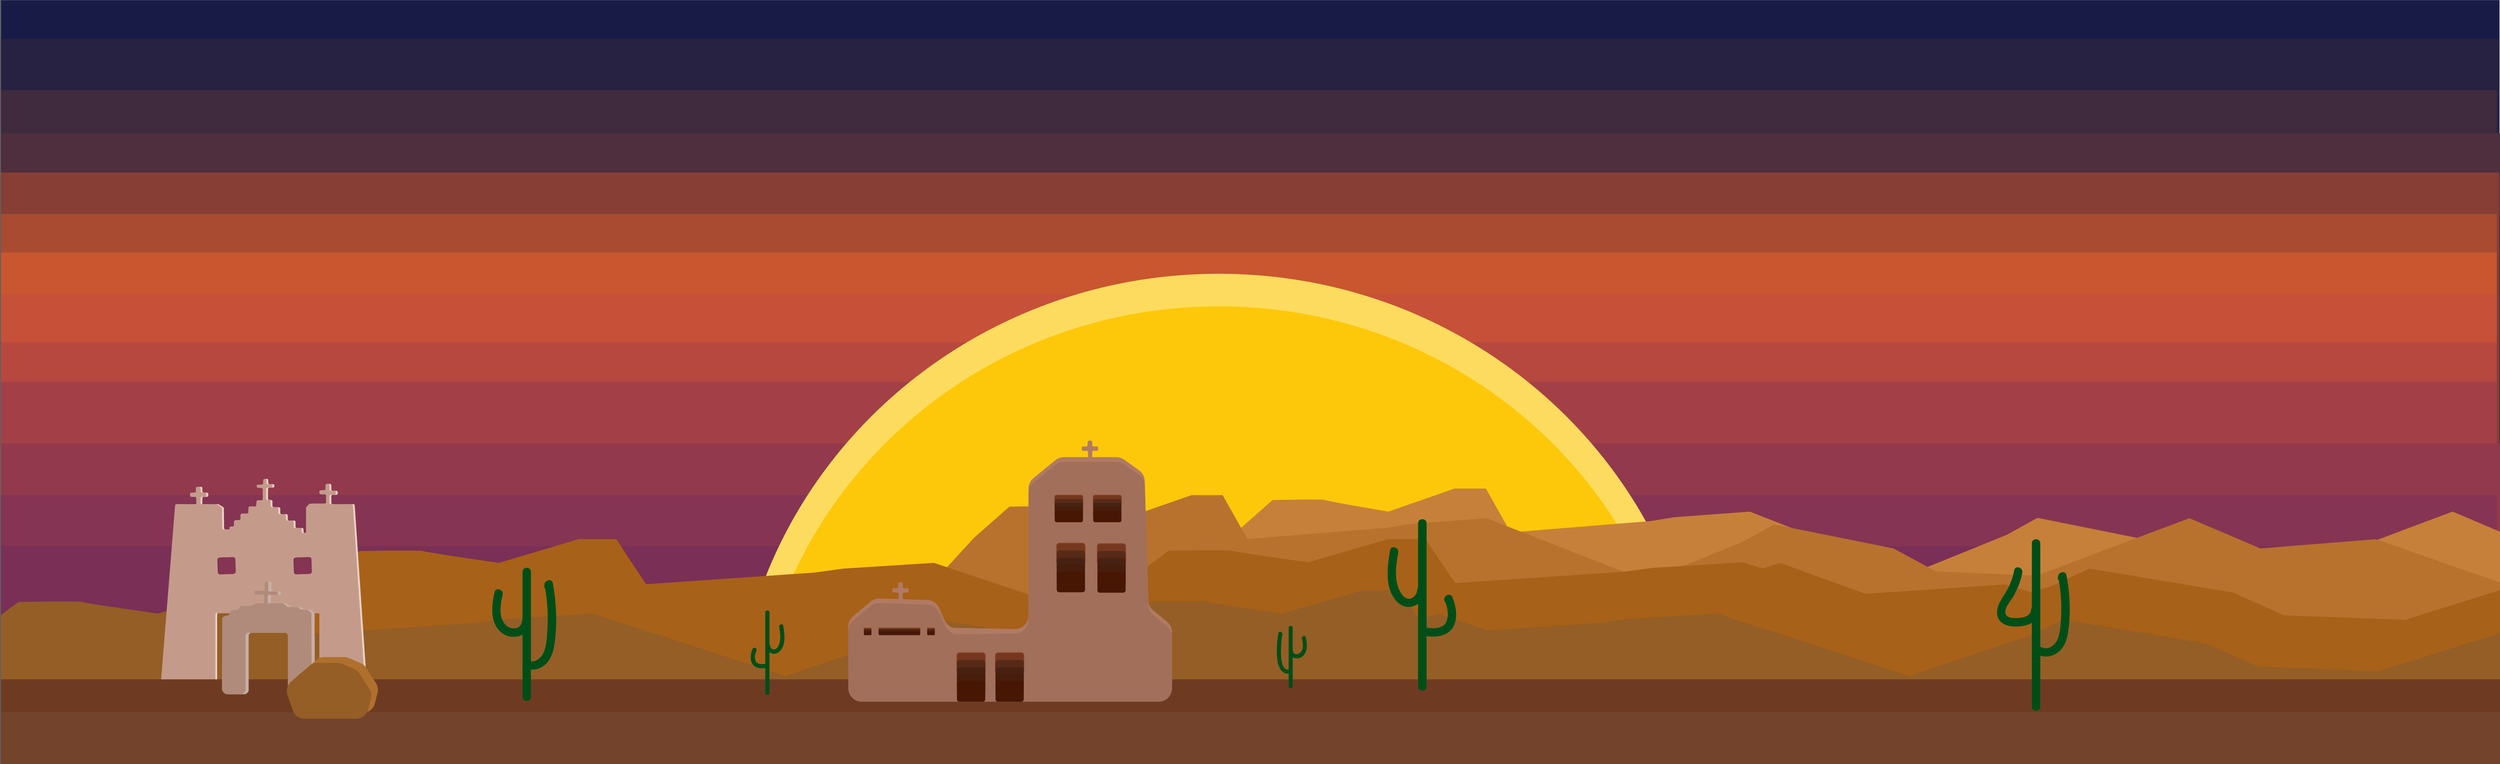 sunset-02.png